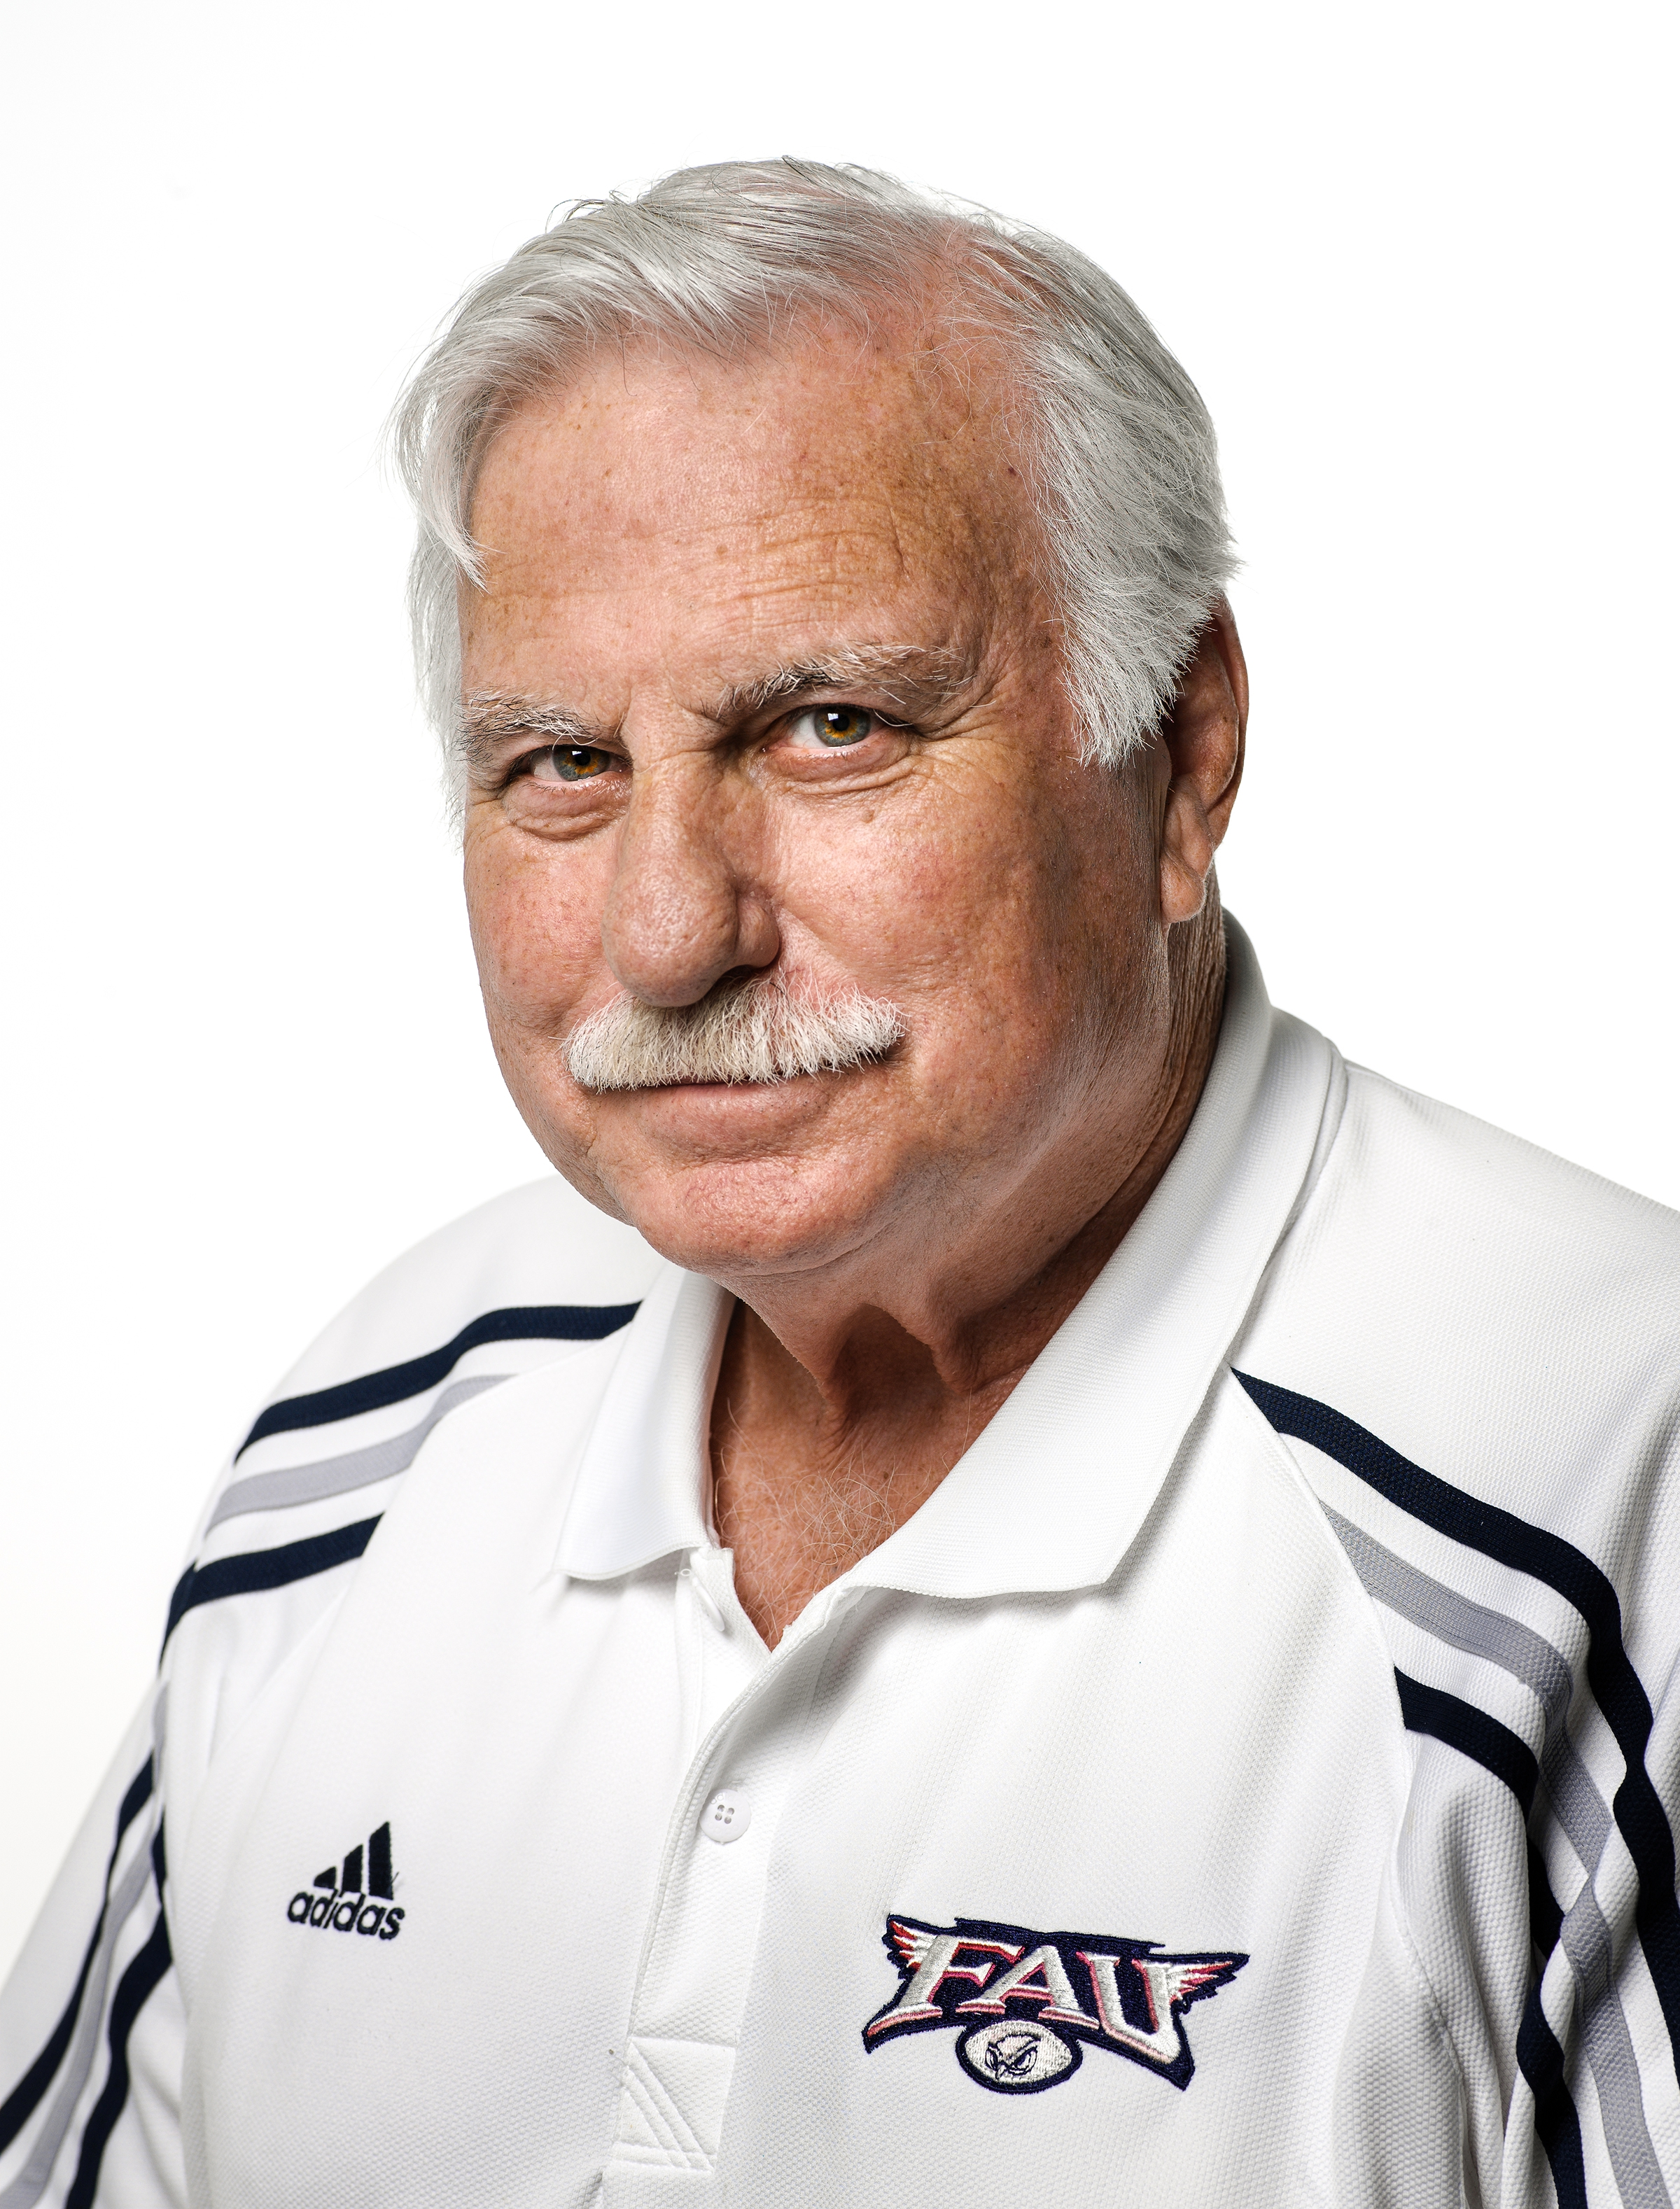 Coach Howard Schnellenberger